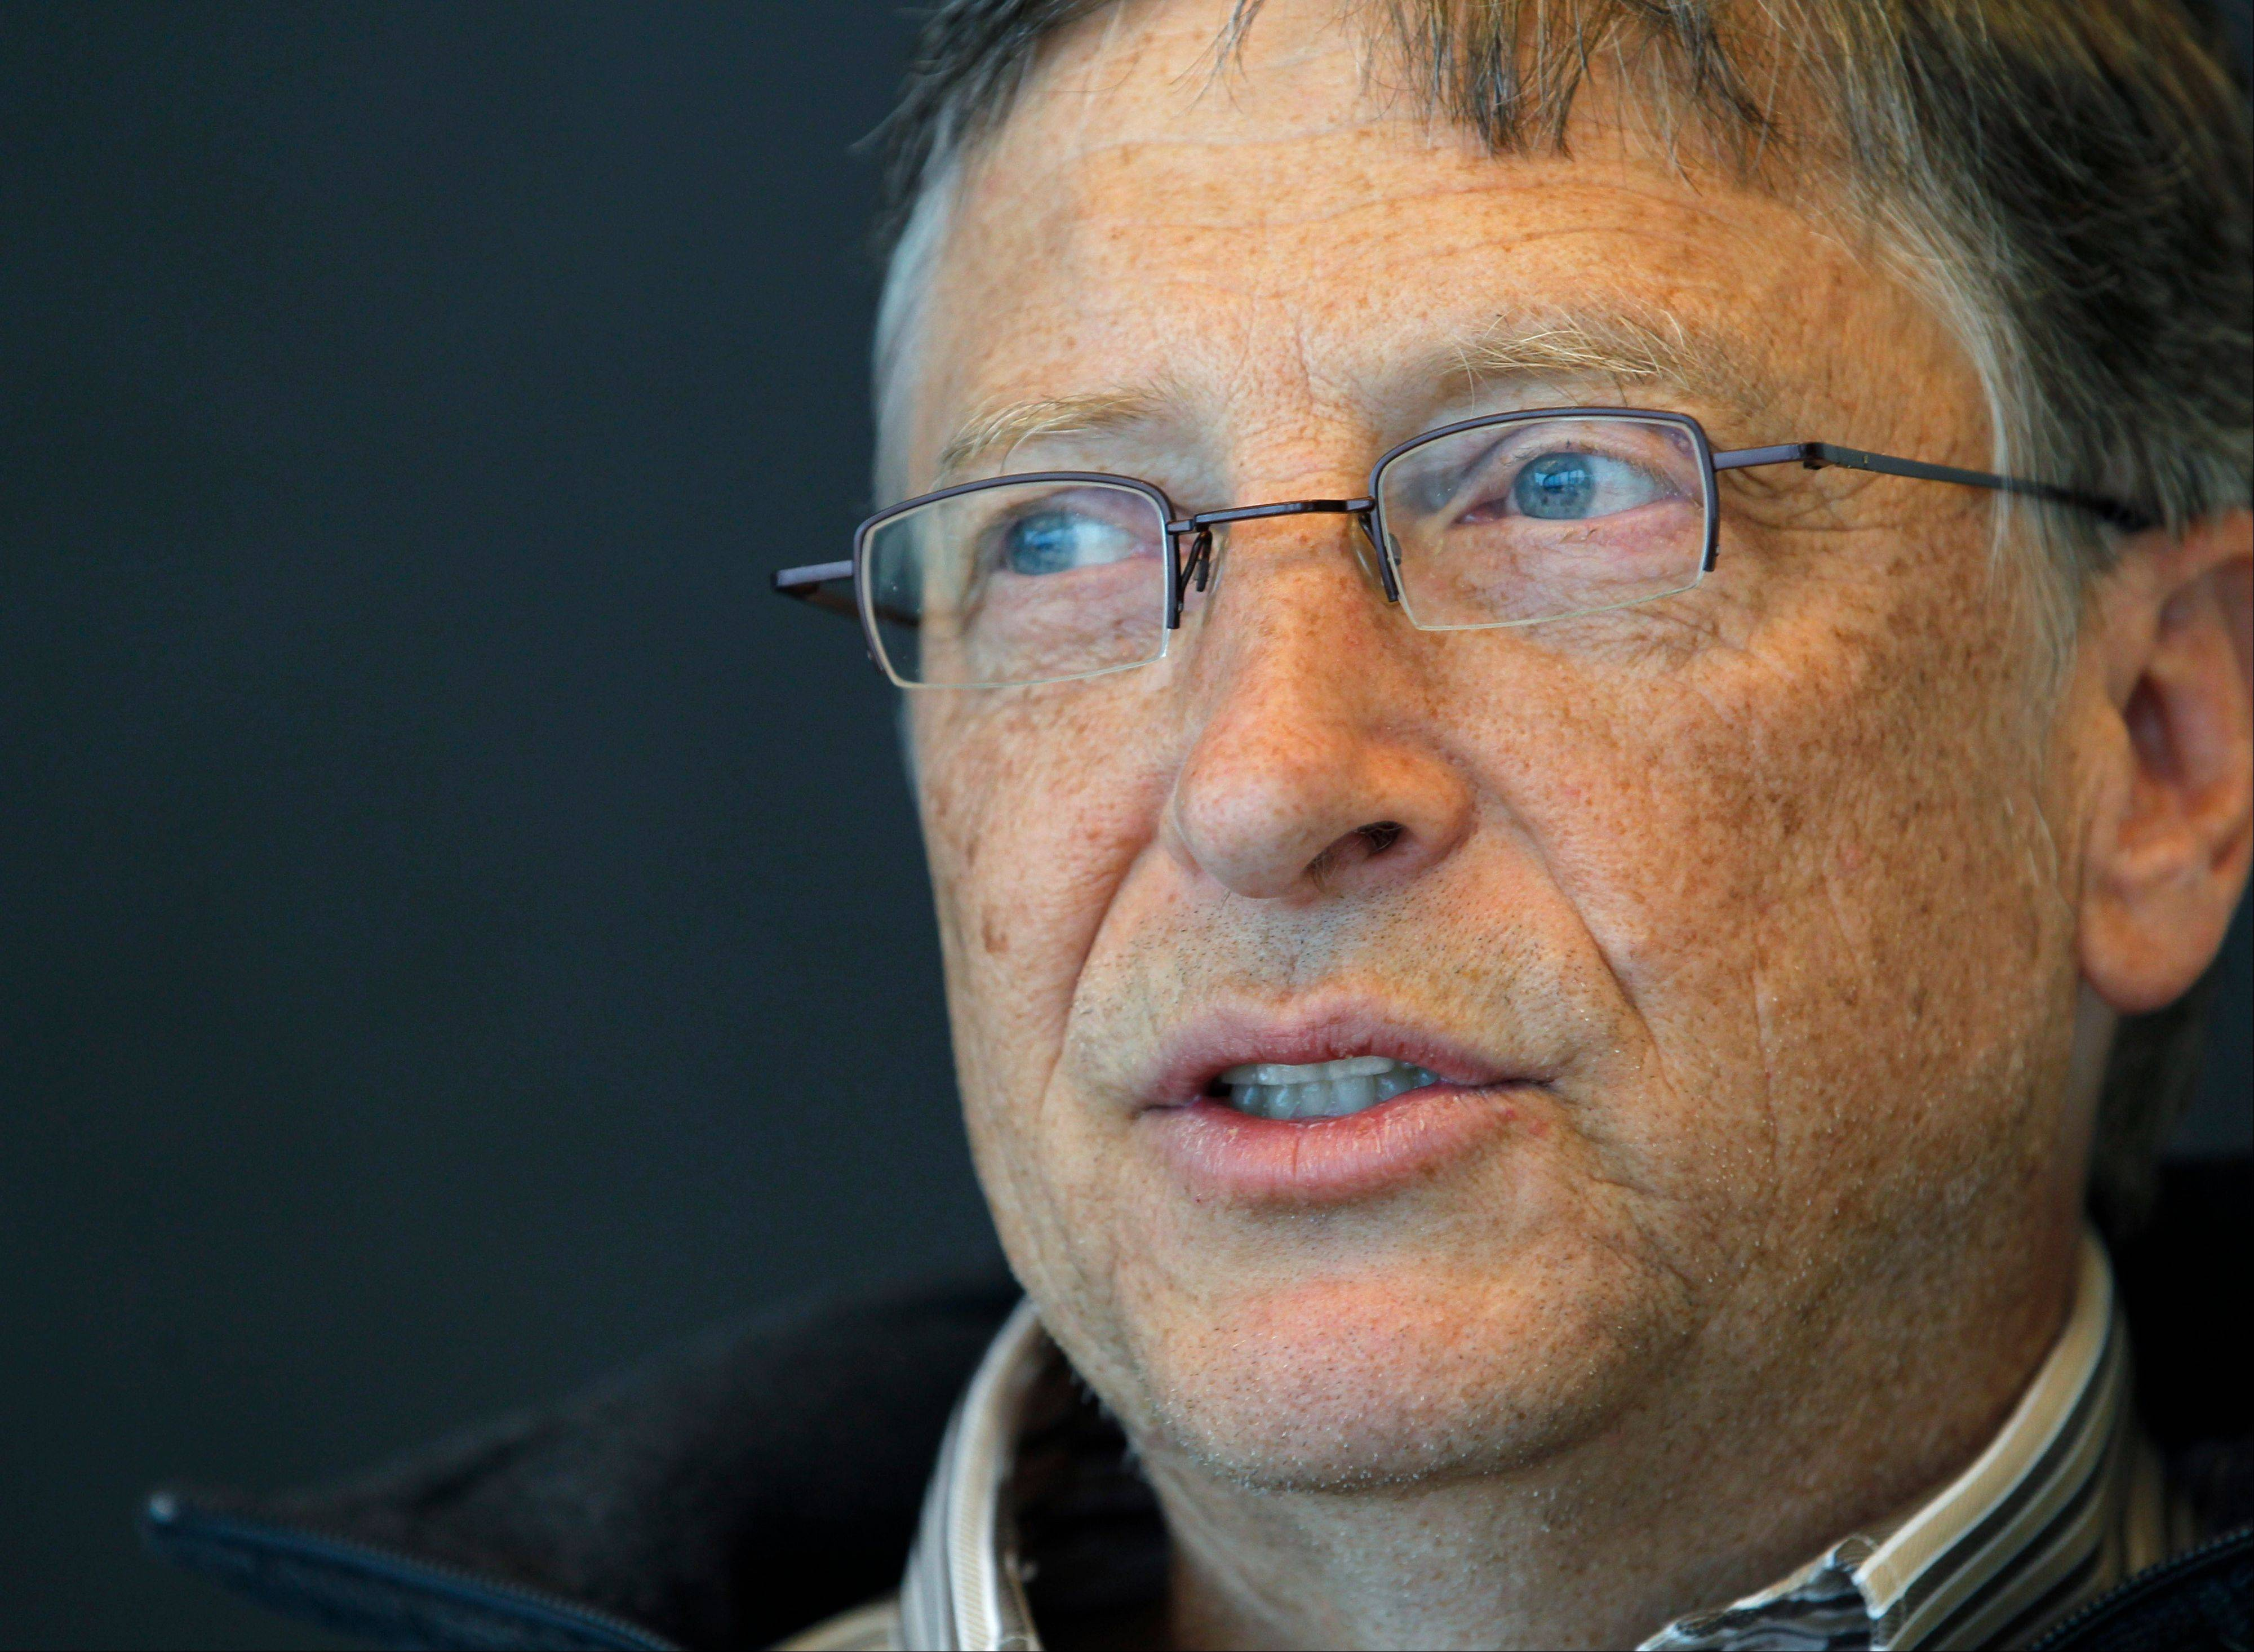 According to Farhad Manjoo, there's only guy who should be running Microsoft — Bill Gates.